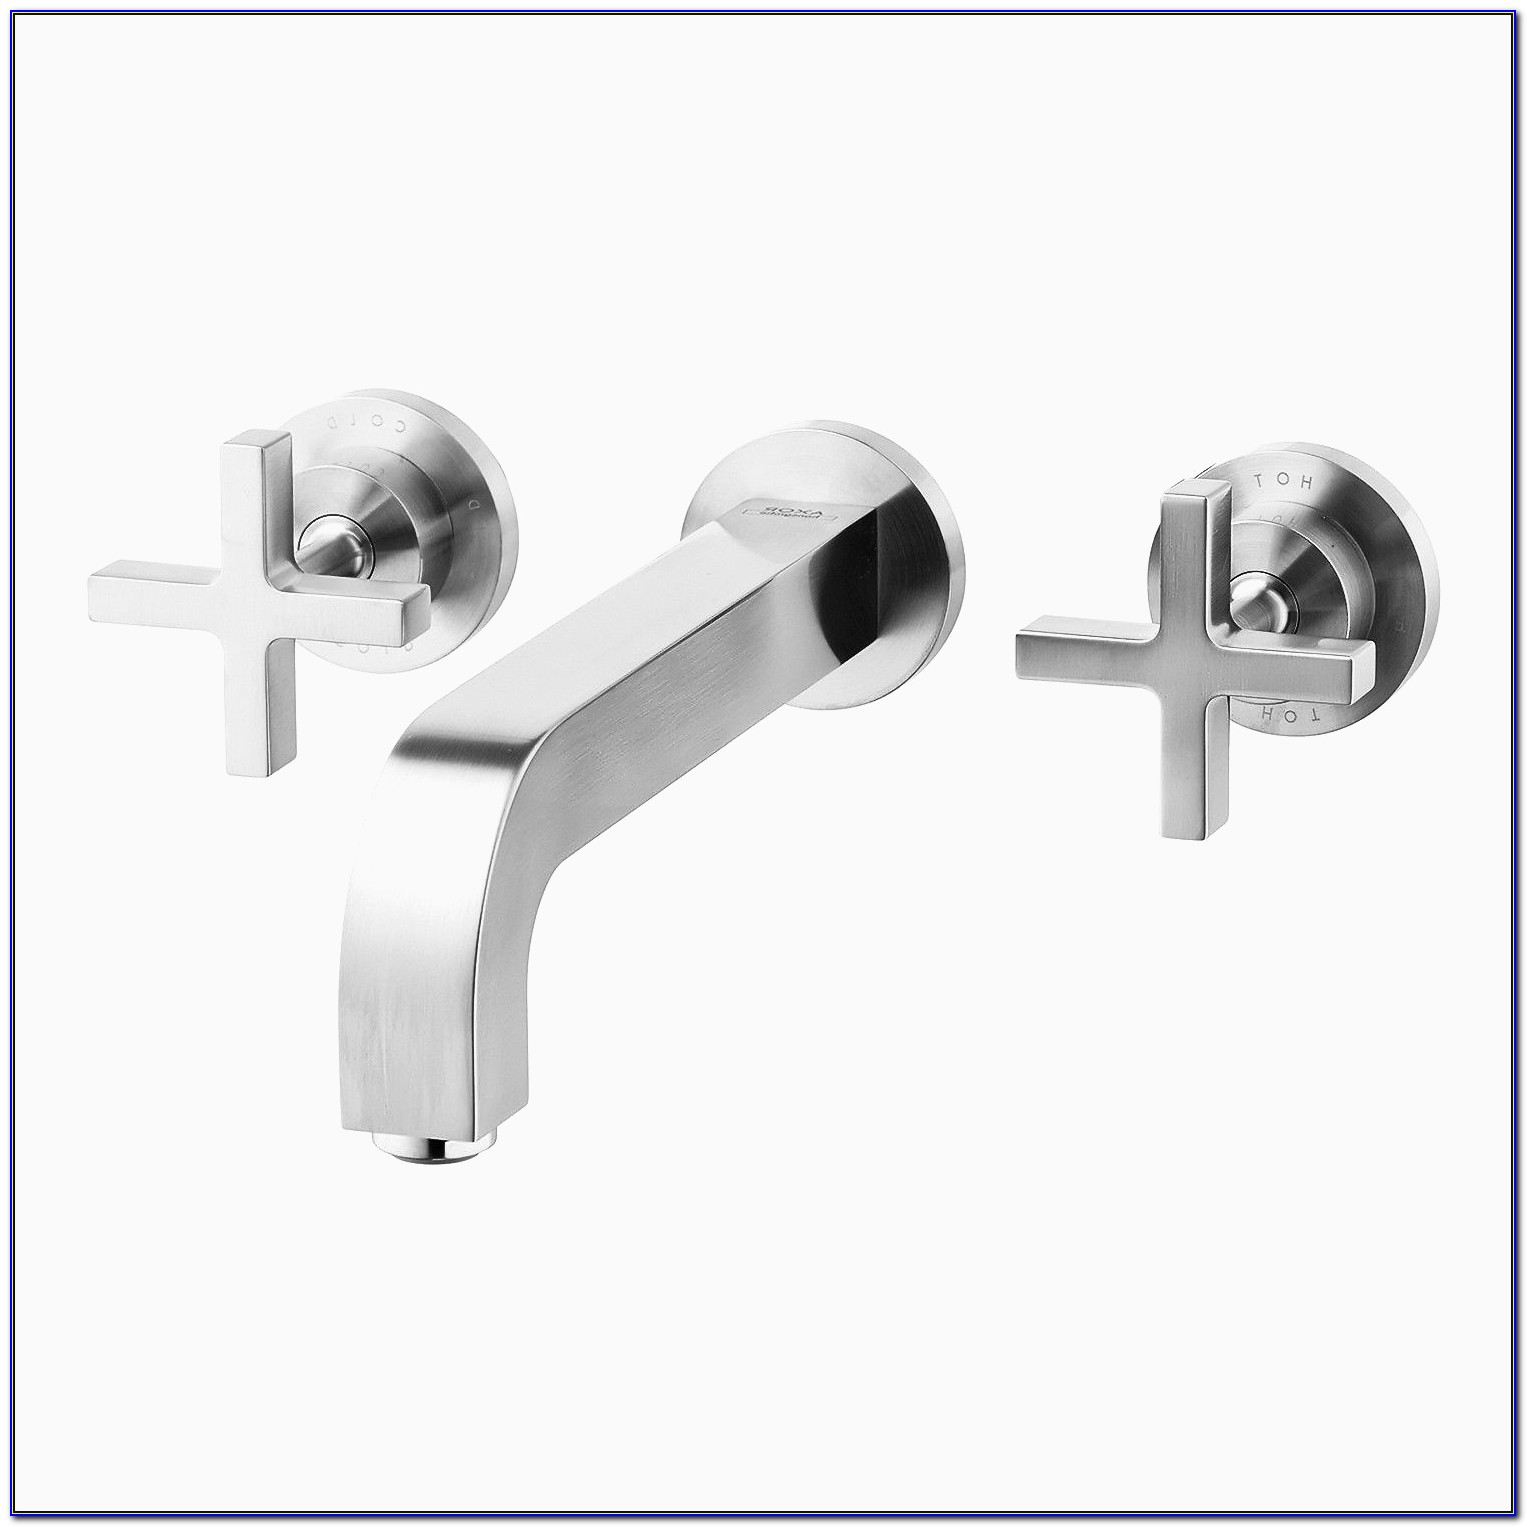 Wall Mounted Bathroom Faucets Unique Hansgrohe Chrome Axor Citterio Bathroom Faucet Wall Mount